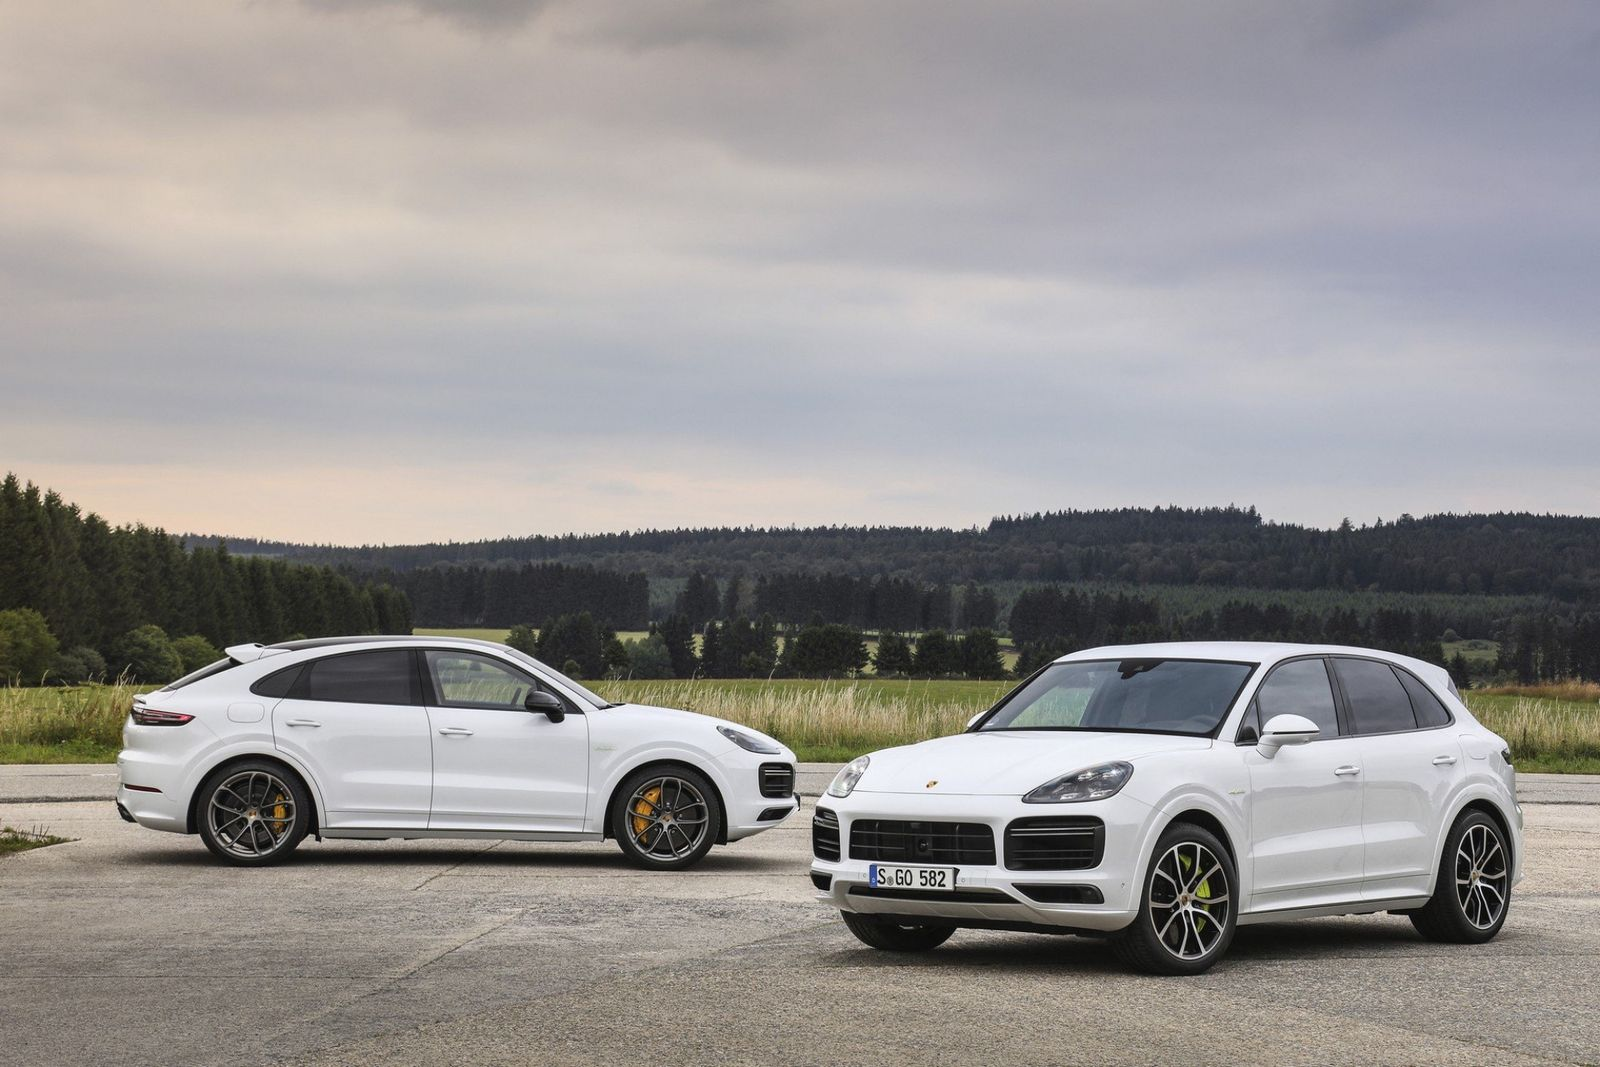 New Porsche Cayenne Turbo S E-Hybrid has 670 horsepower, hits sixty in 3.6 seconds